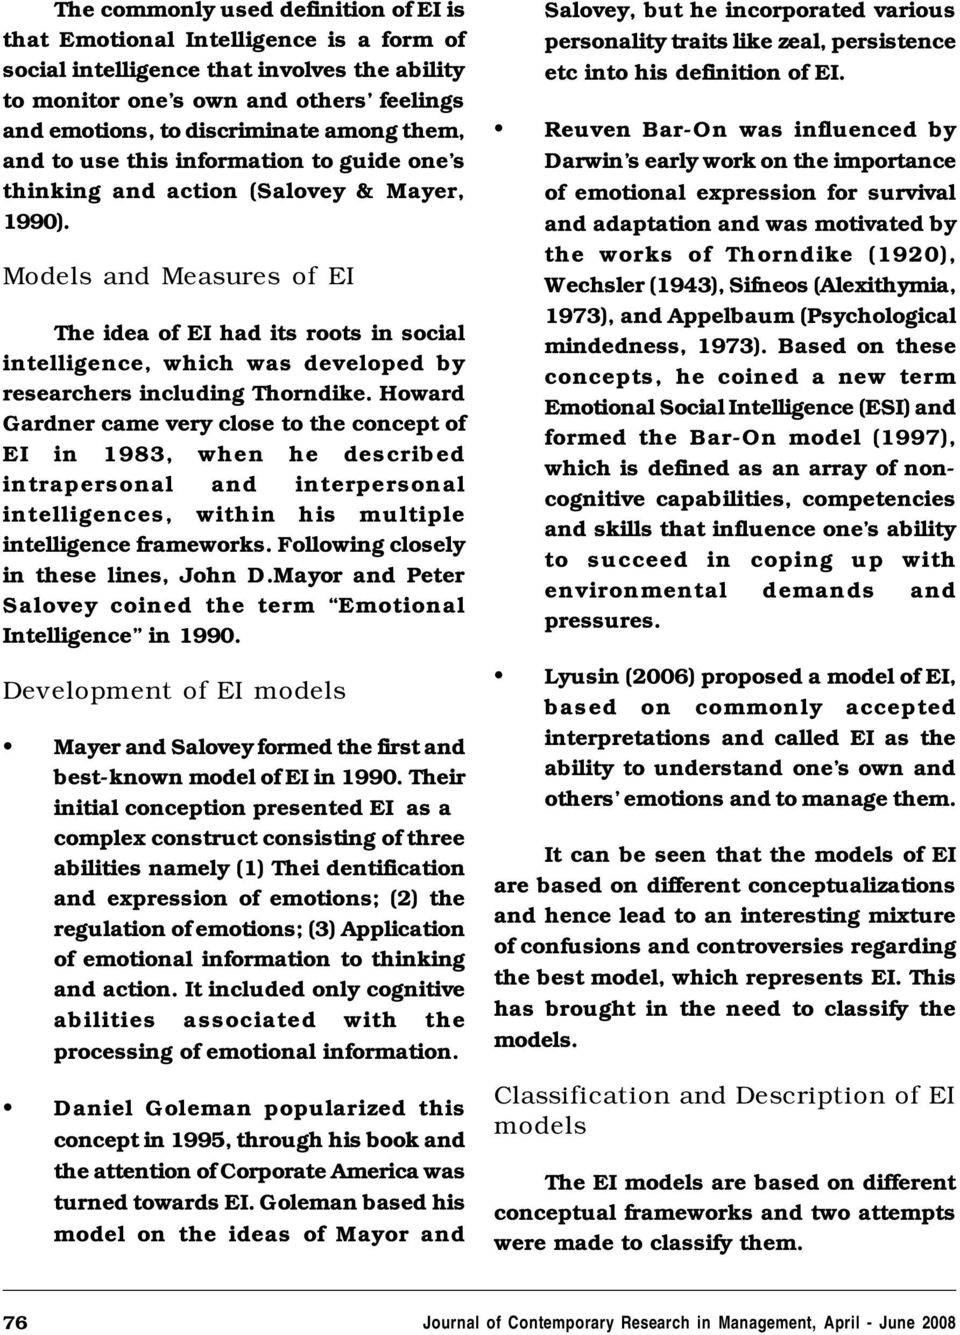 Concepts and Measures of Emotional Intelligence A Research